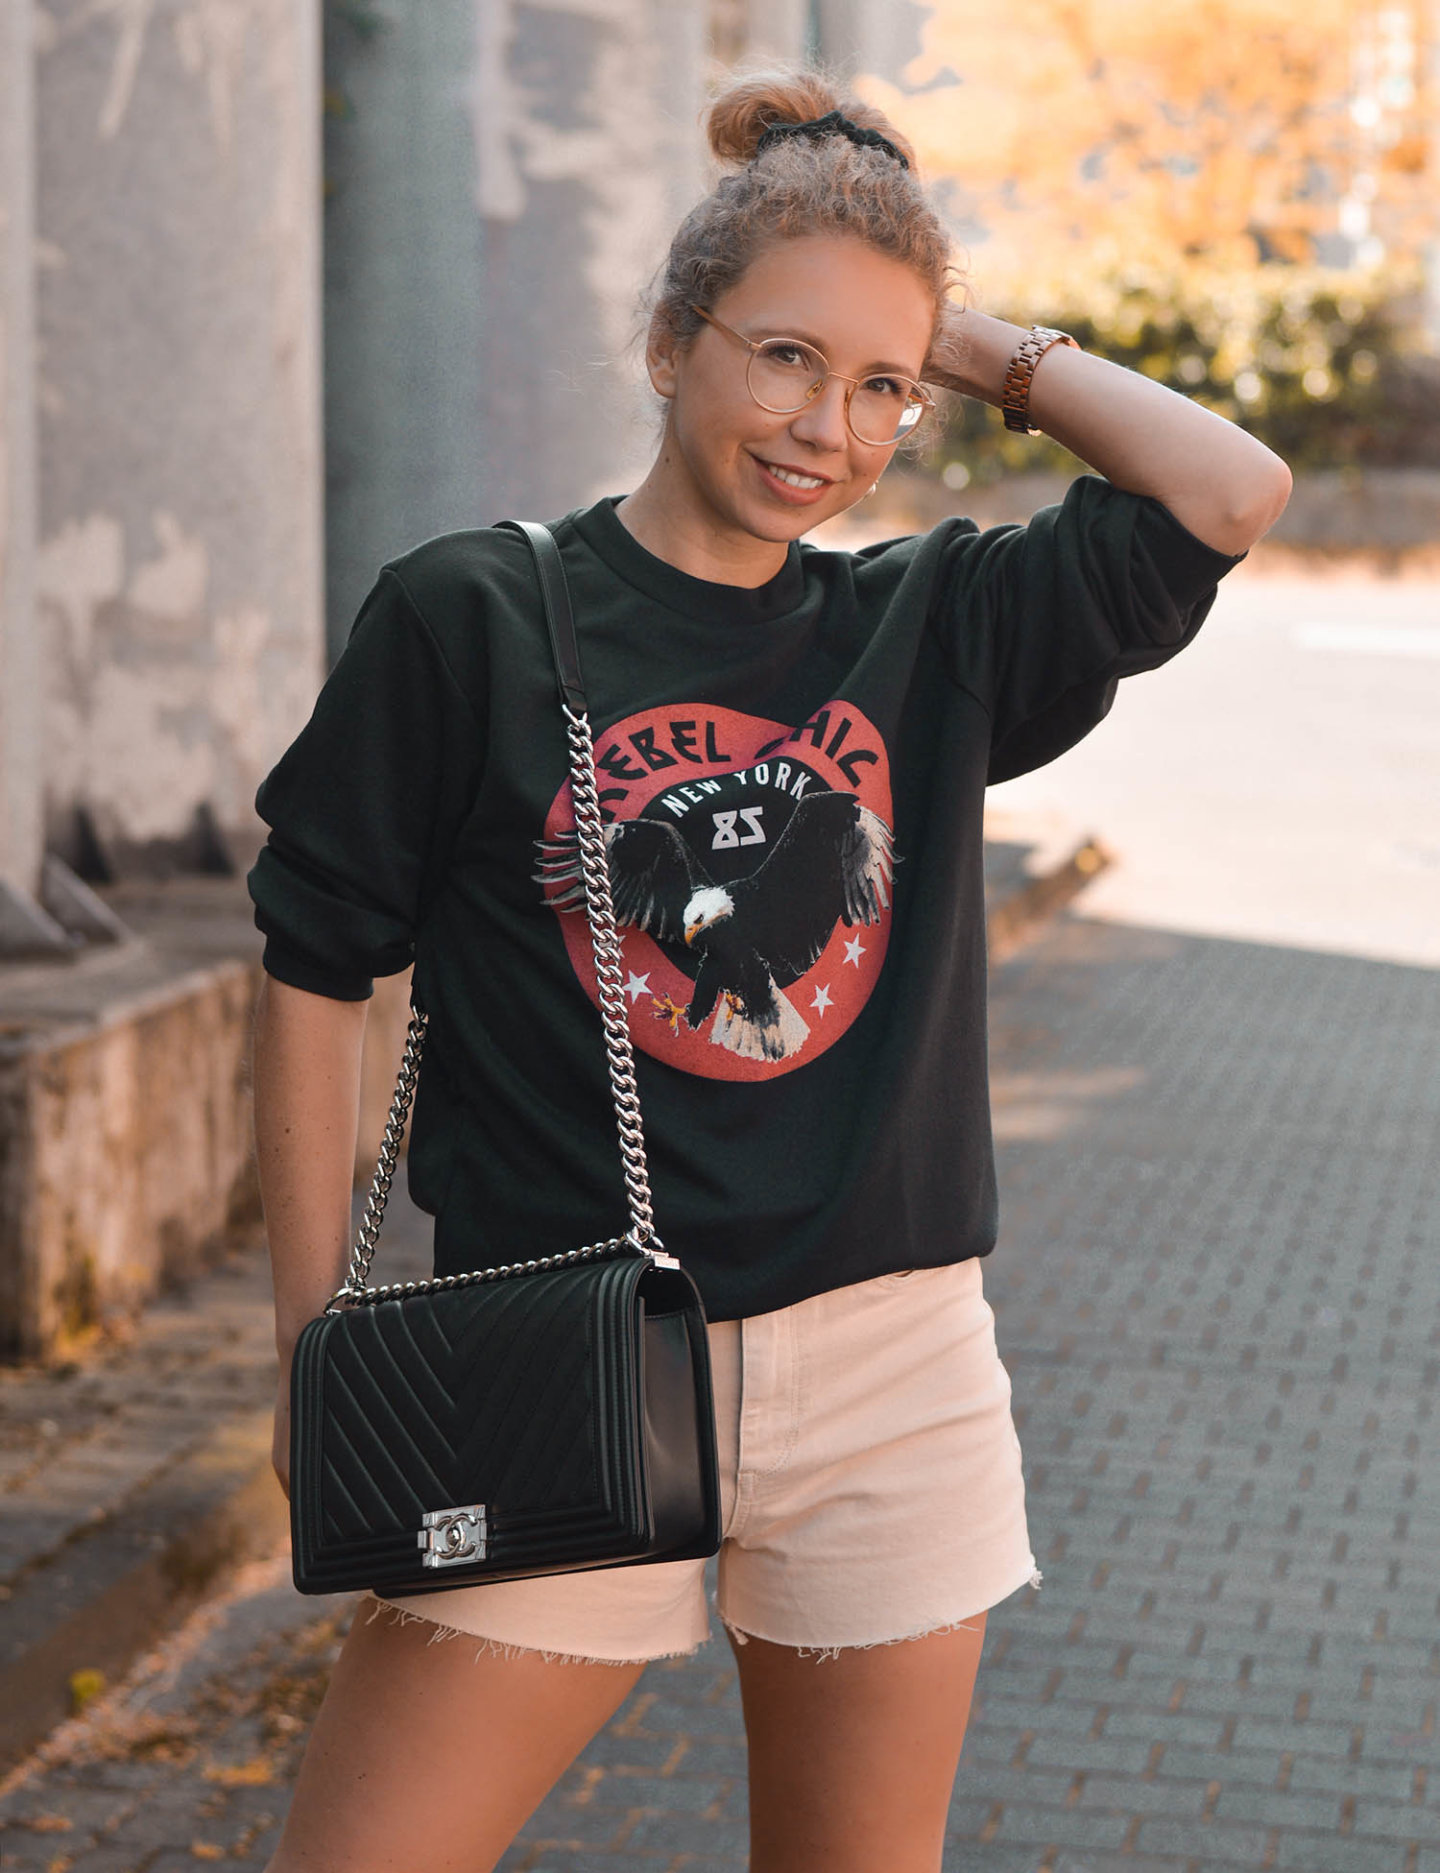 rebel chic New York sweatshirt, Chanel Tasche und shorts